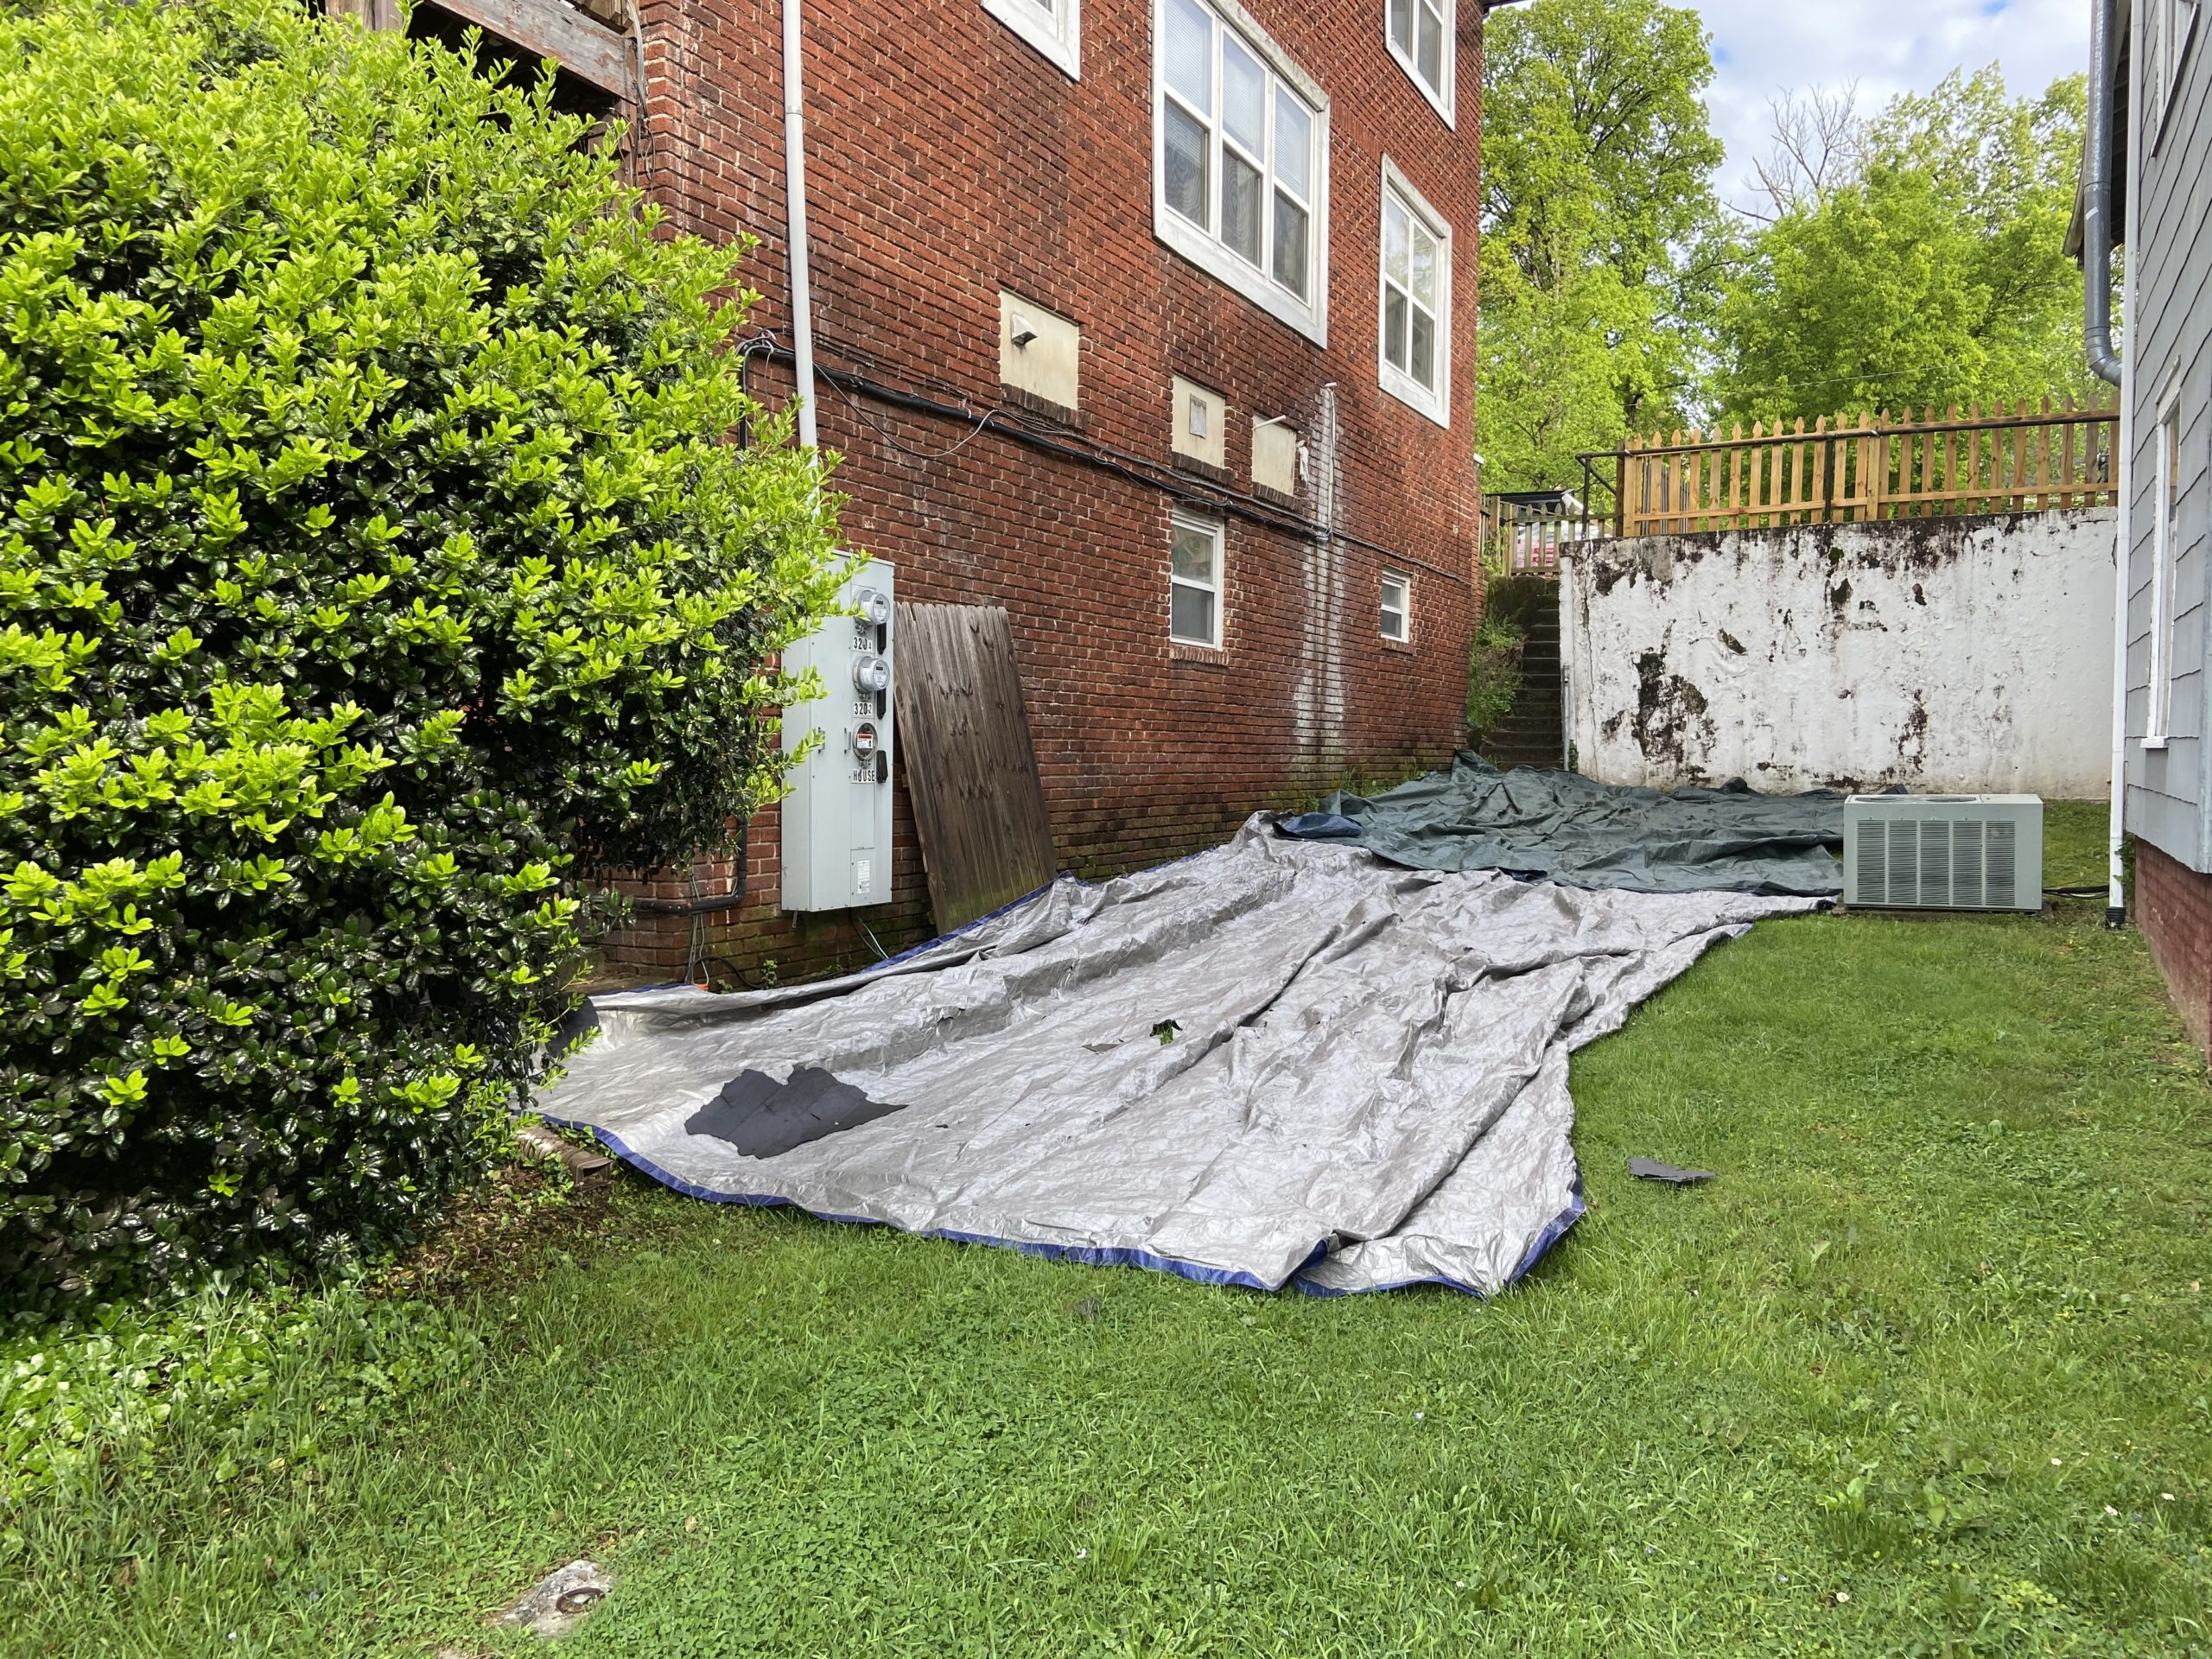 This is a view of tarps that are laid on the ground around the house for protection.